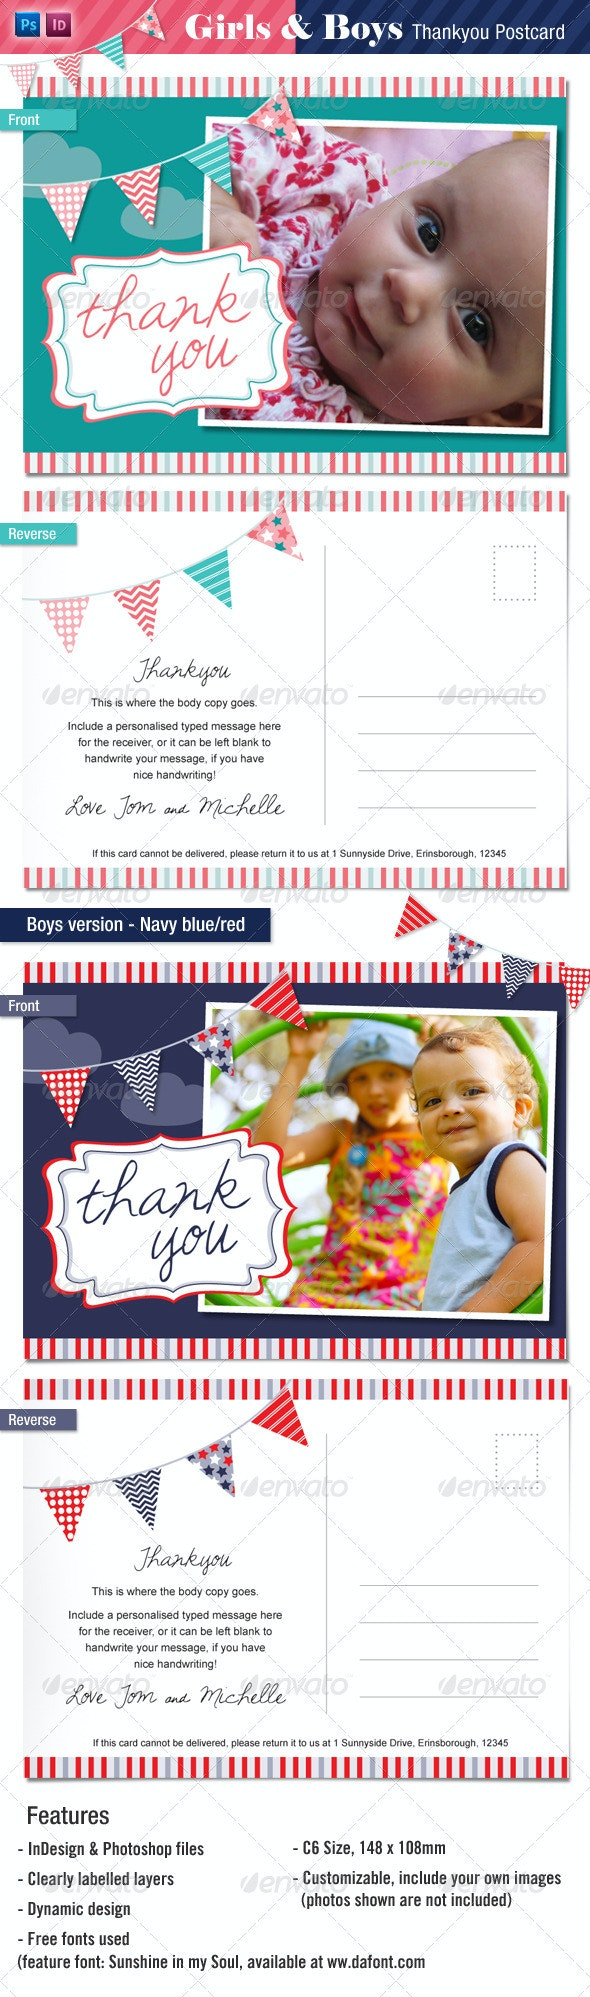 Baby Thankyou Postcards for Boys and Girls - Family Cards & Invites